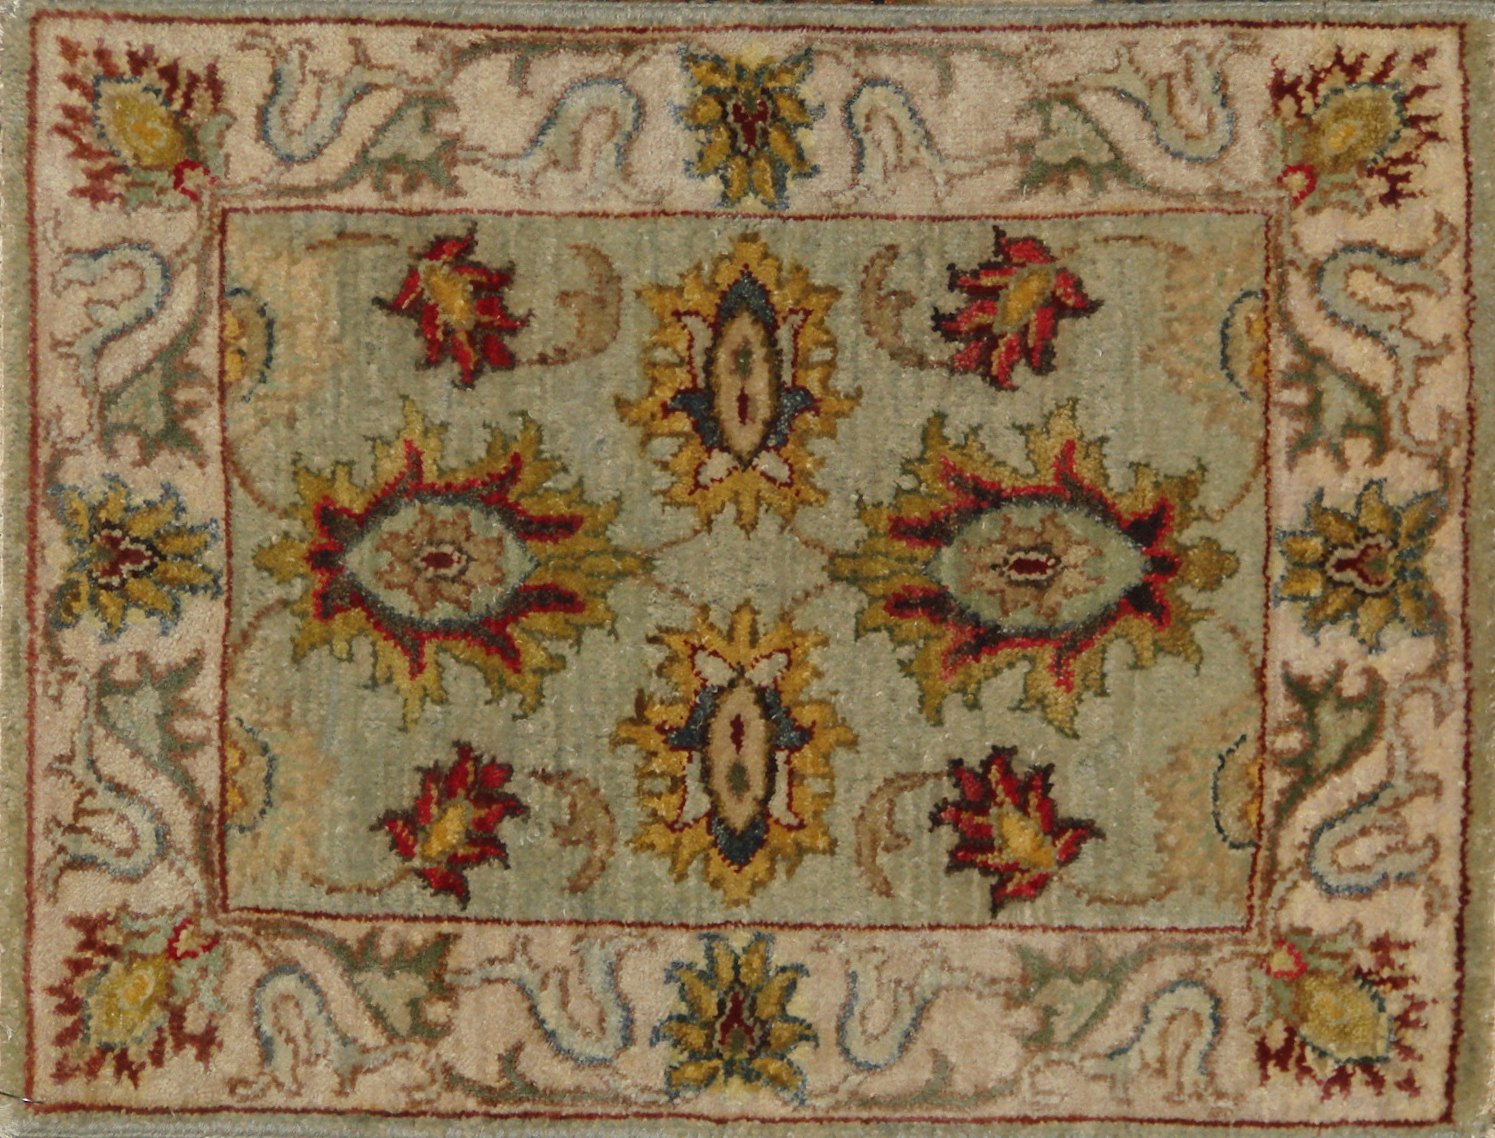 1.6X2 & SMALLER Traditional Hand Knotted Wool Area Rug - MR20730